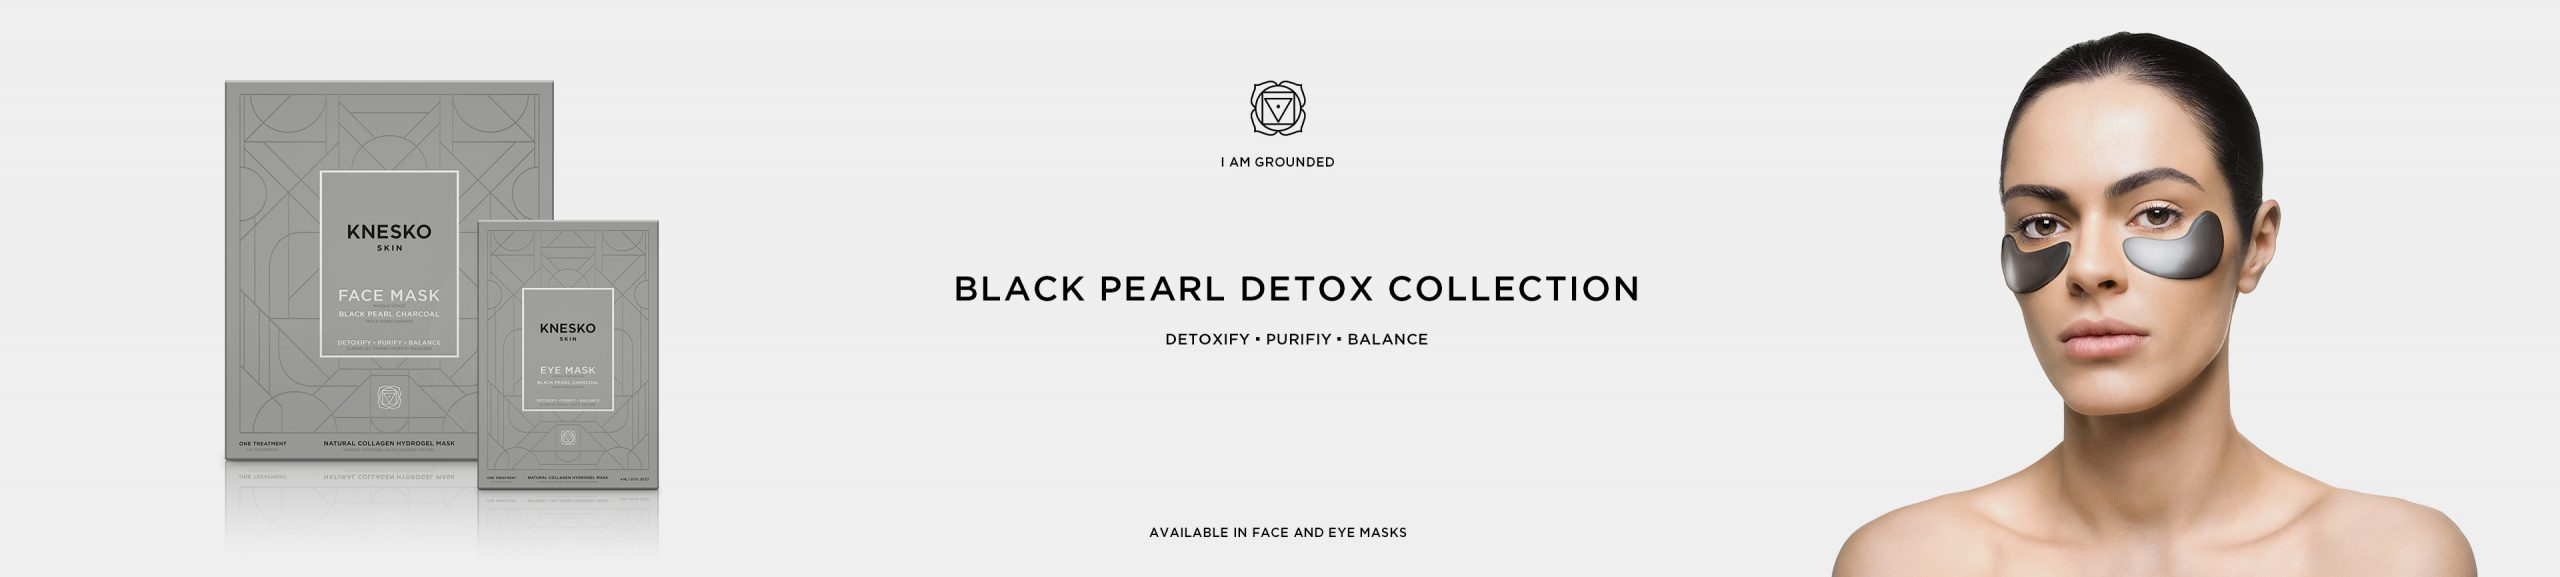 Knesko Black Pearl Charcoal Detox Collection - Eye Mask on Model